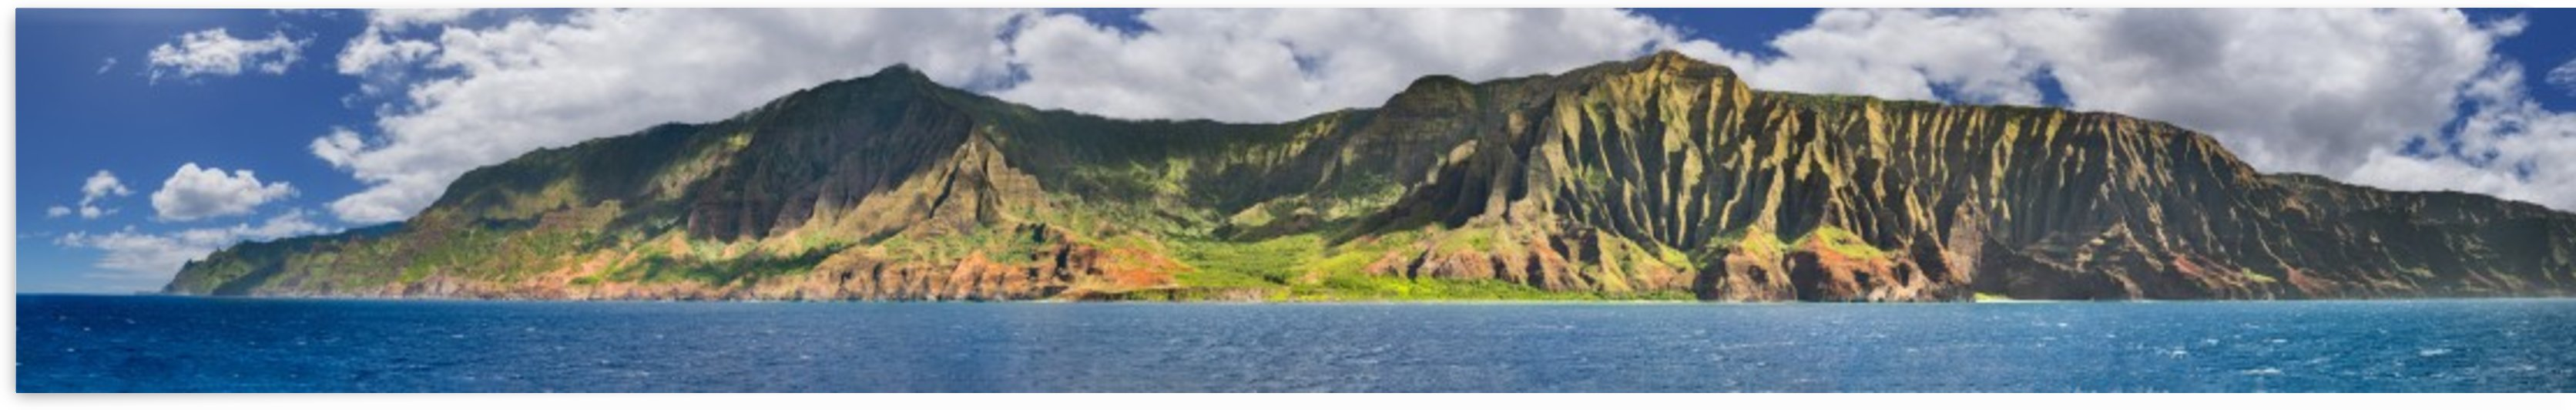 Napali Coast very large by Dave Tonnes